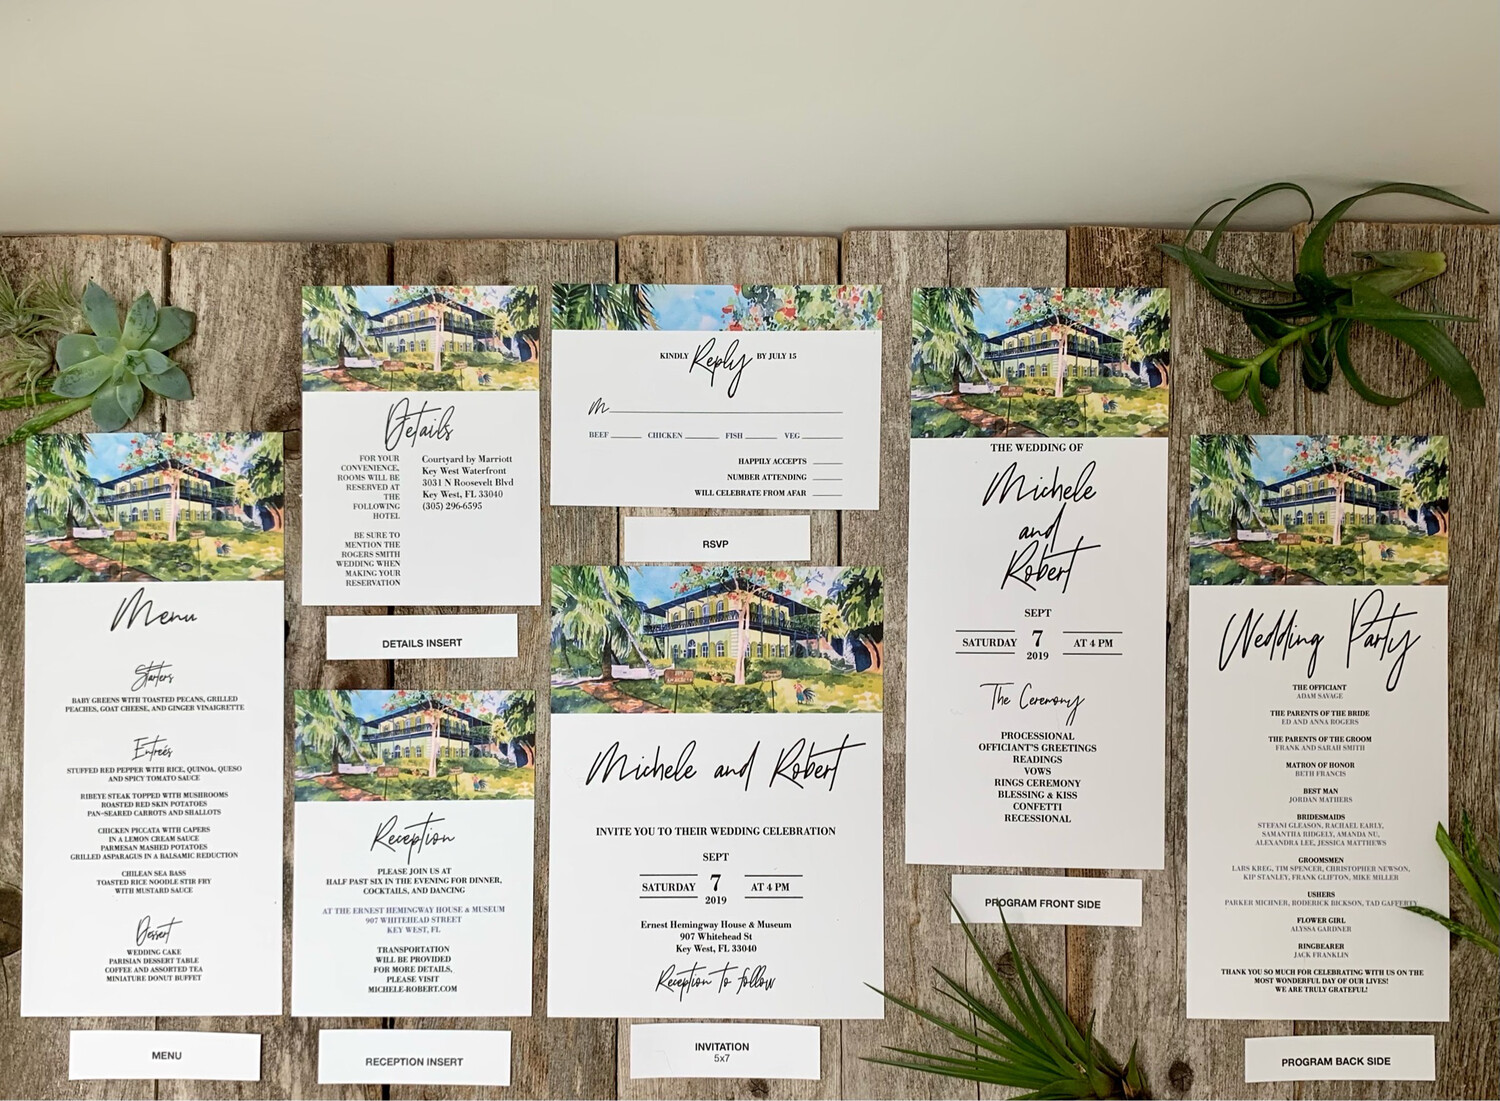 Wedding Invitation Matching Stationery Suite - Wedding Invitations on Luxurious Paper with Envelopes - Set of 25 - Choose From 24 Venues - Hemingway Home & Museum in Key West, FL, Etc